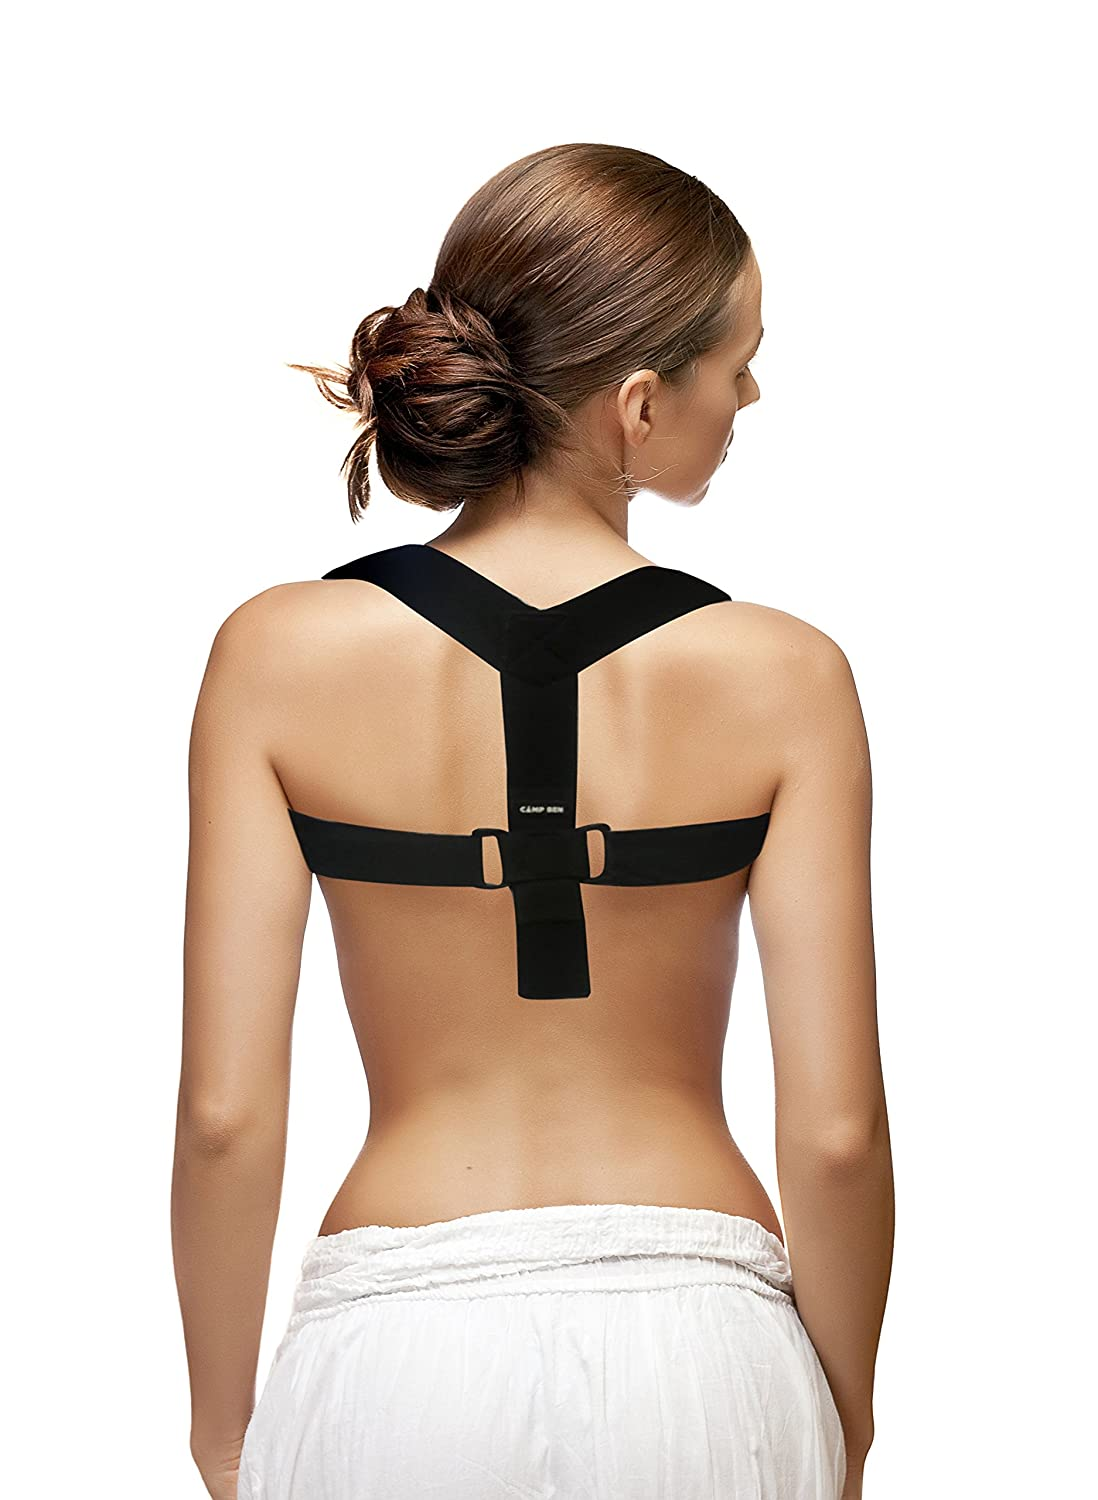 Best Posture Corrector 2020.Top 10 Best Back Posture Support Braces Reviews 2019 2020 On